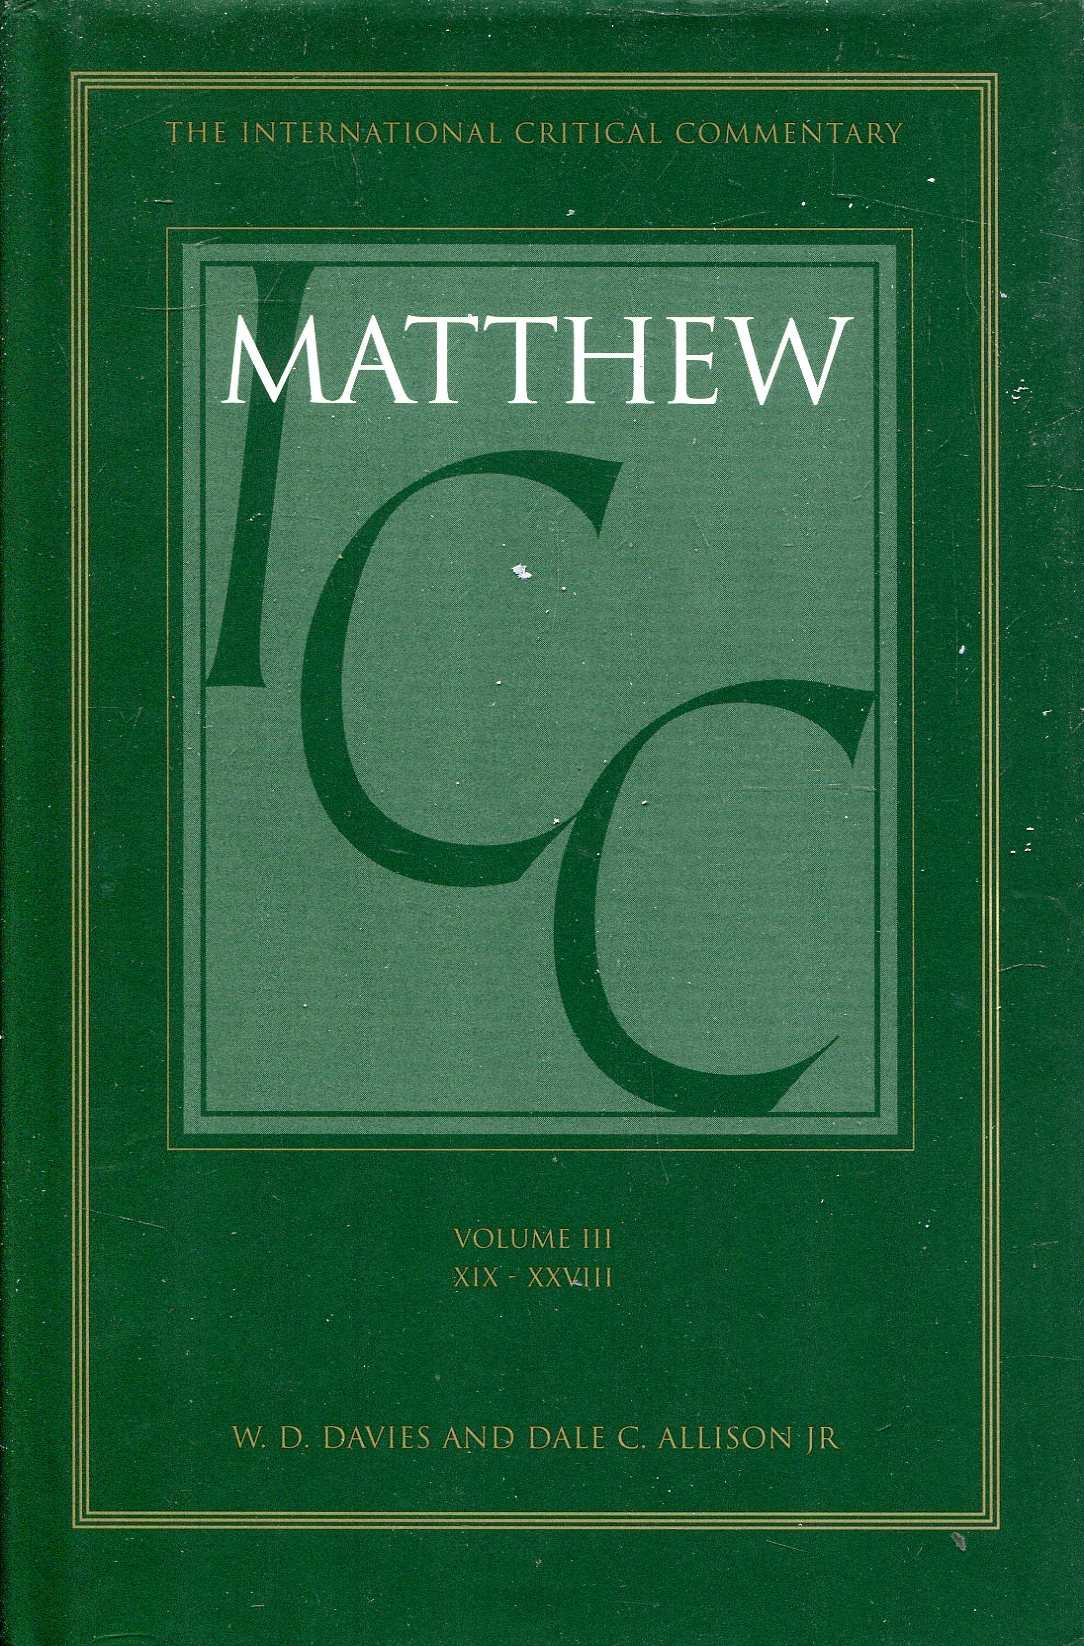 Image for A Critical and Exegetical Commentary on the Gospel According to Saint Matthew, volume III Commentary on Matthew XIX - XXVIII